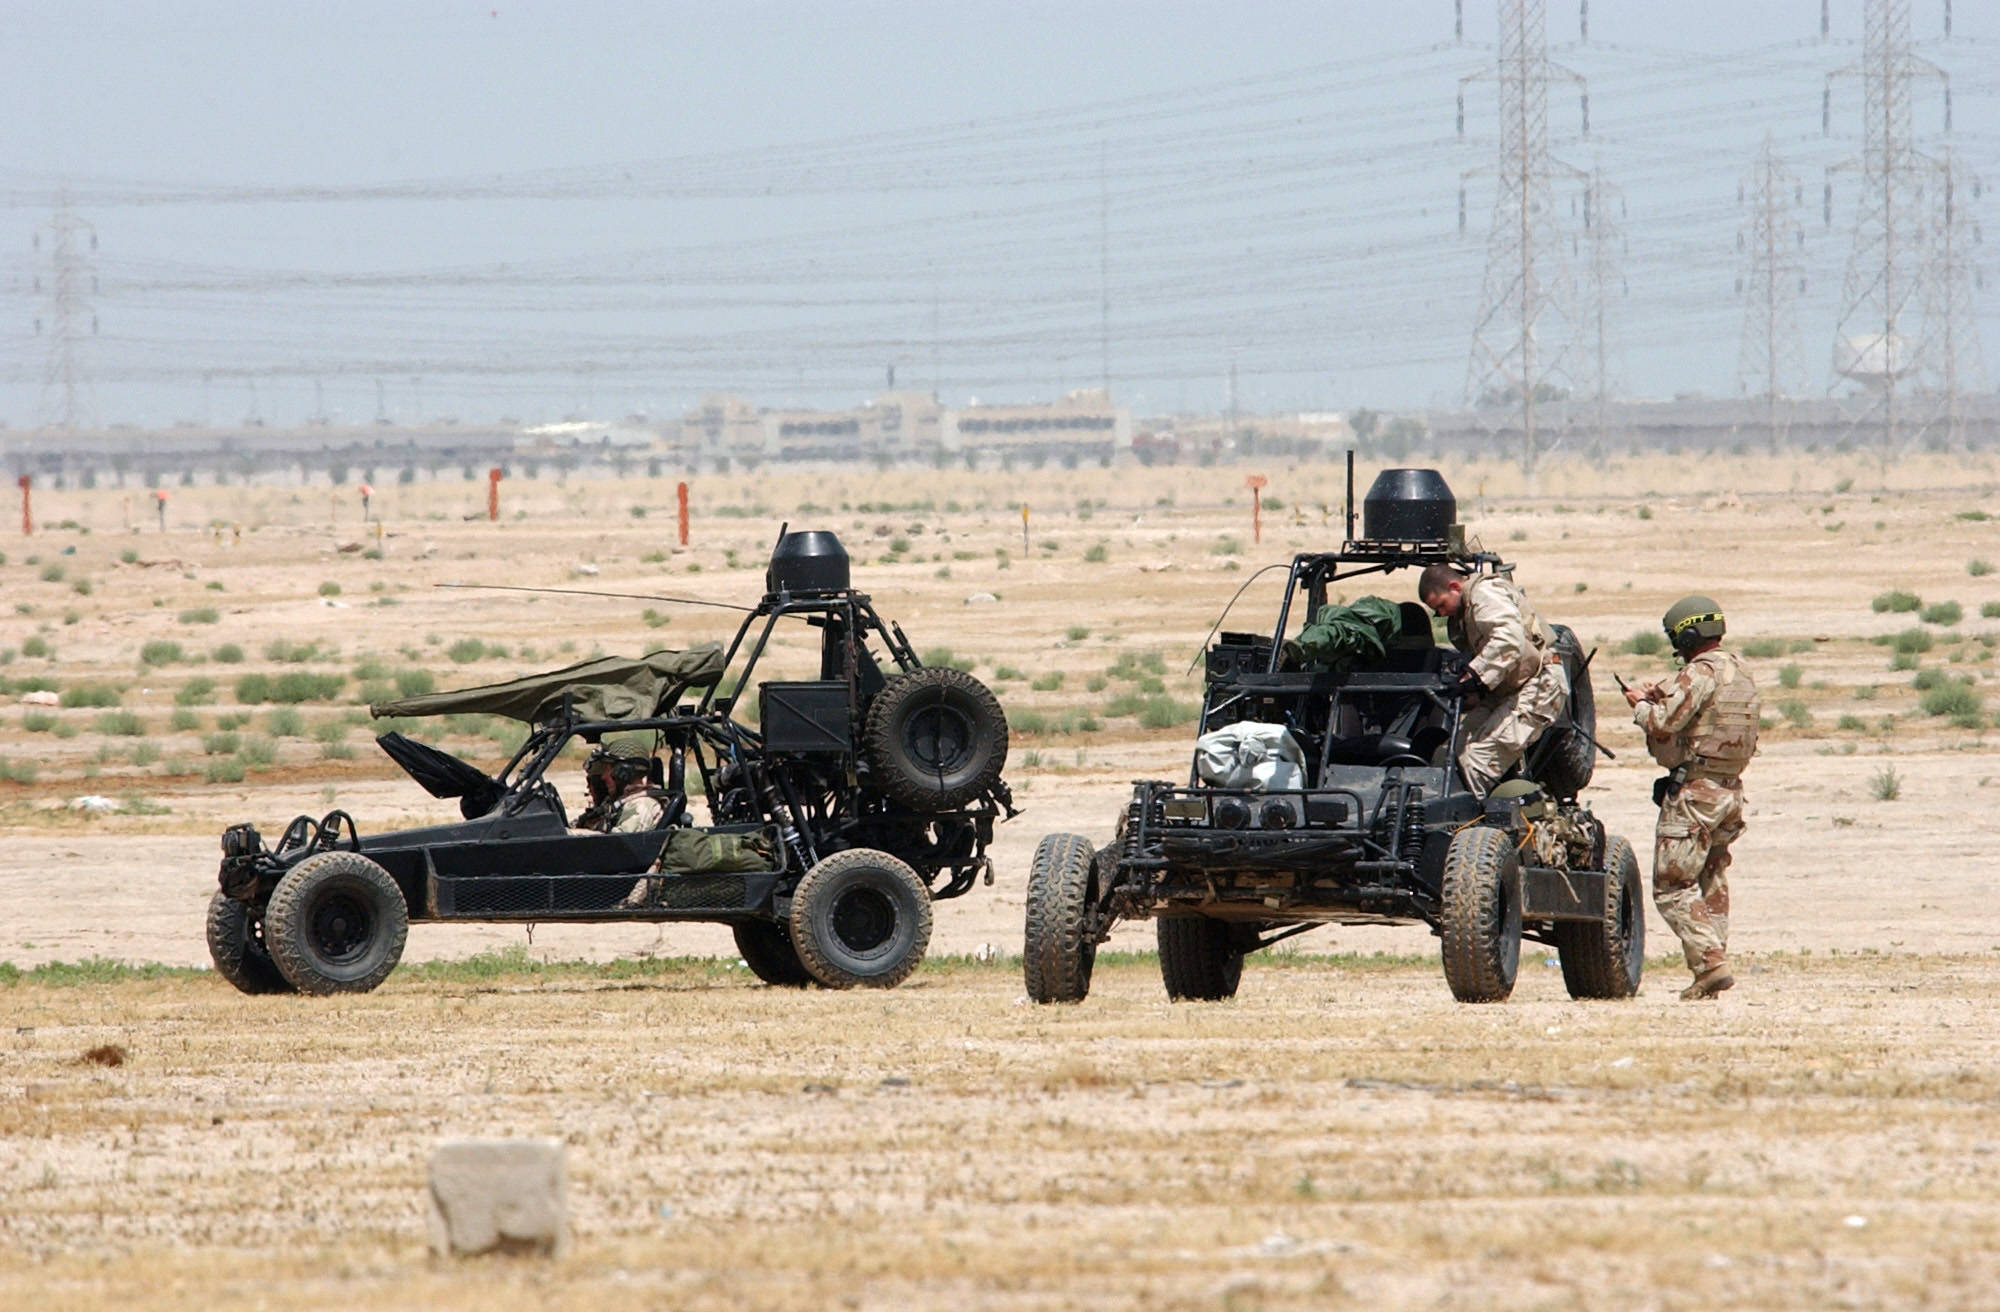 Navy SEAL Desert Patrol Vehicle